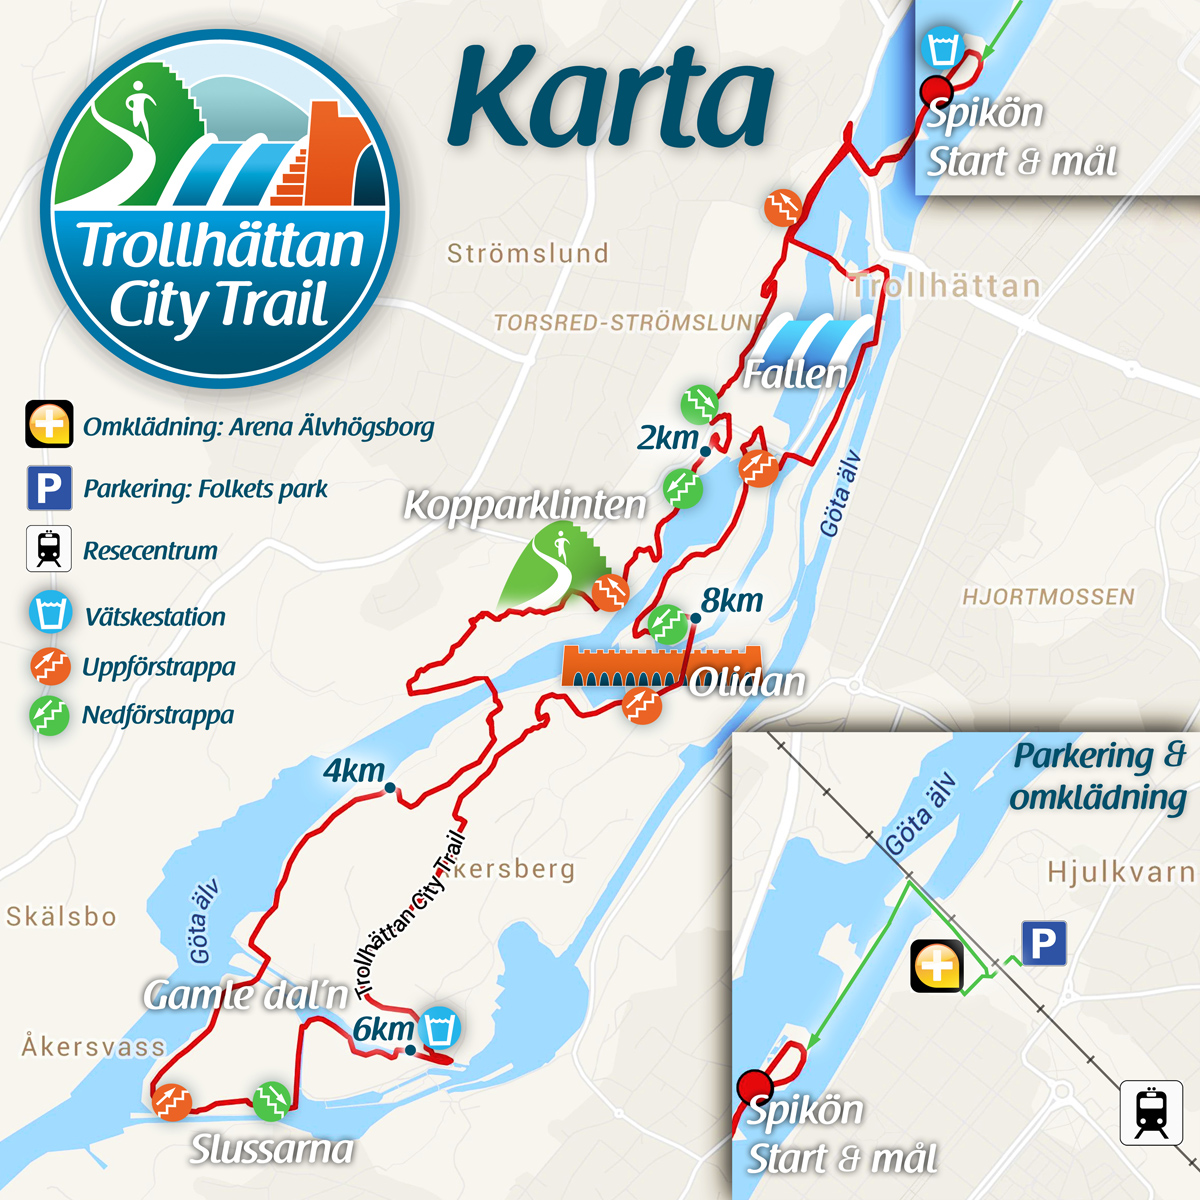 Karta Trollhattan City Trail